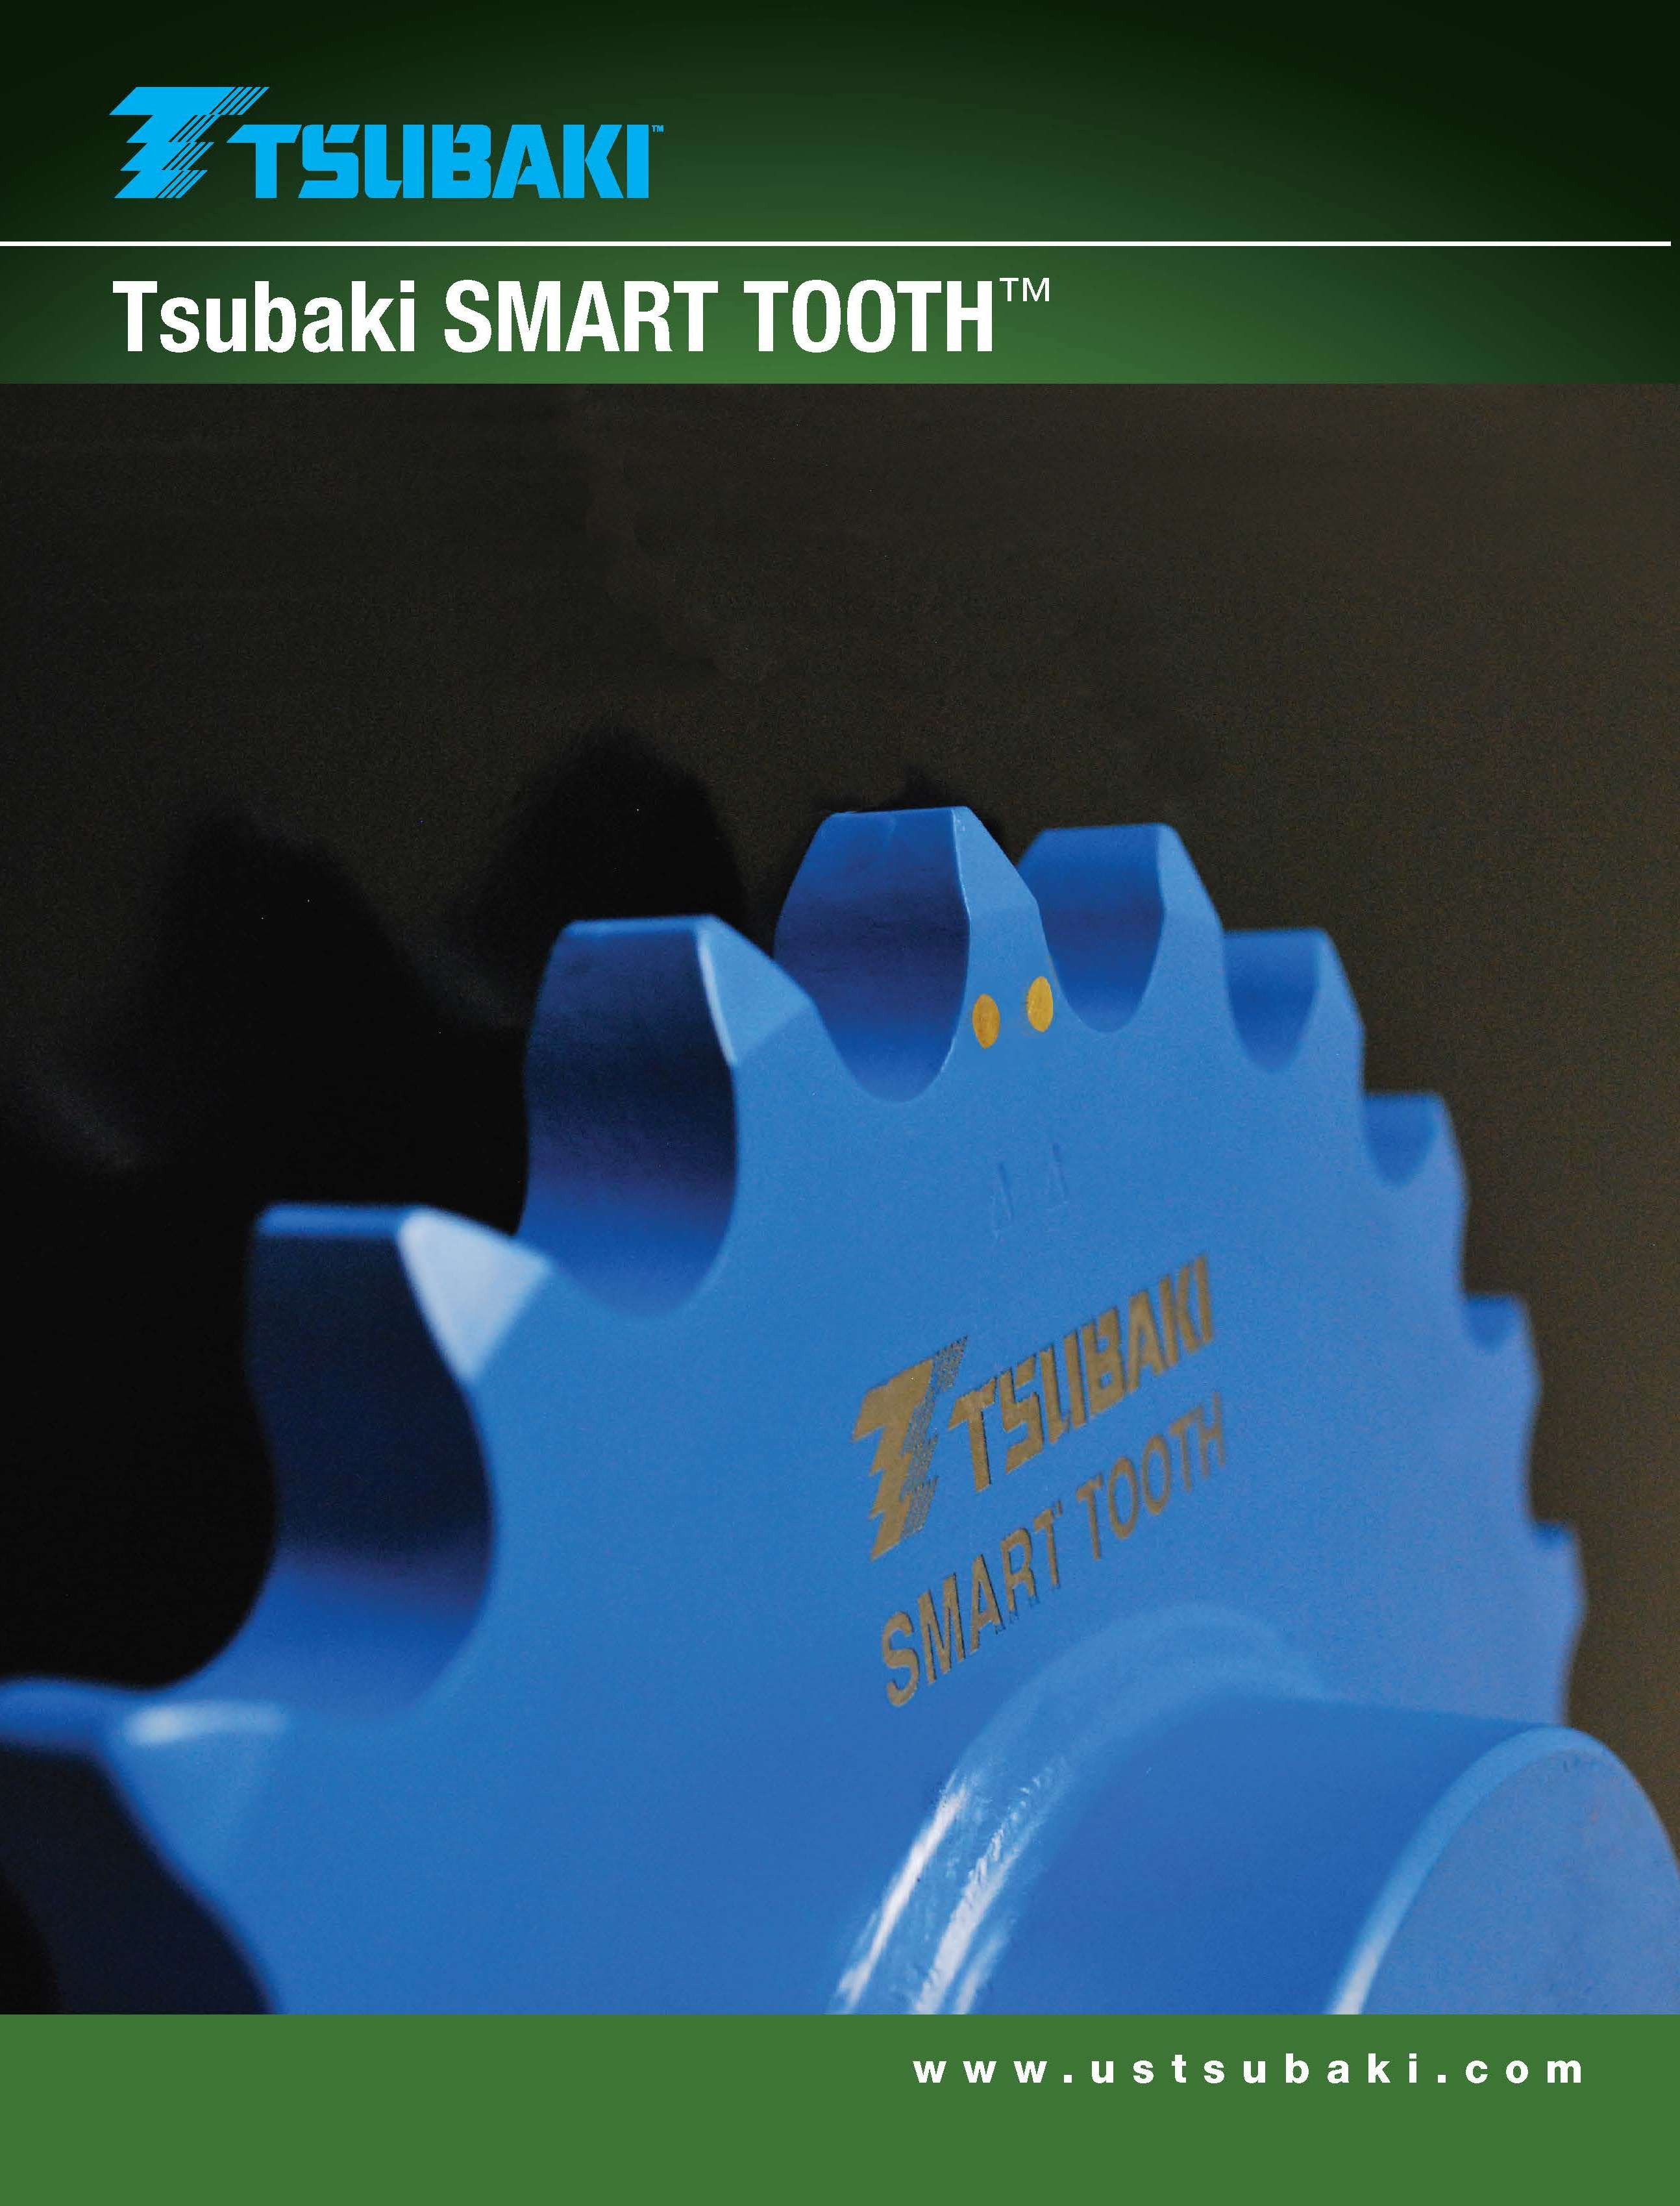 SMART TOOTH